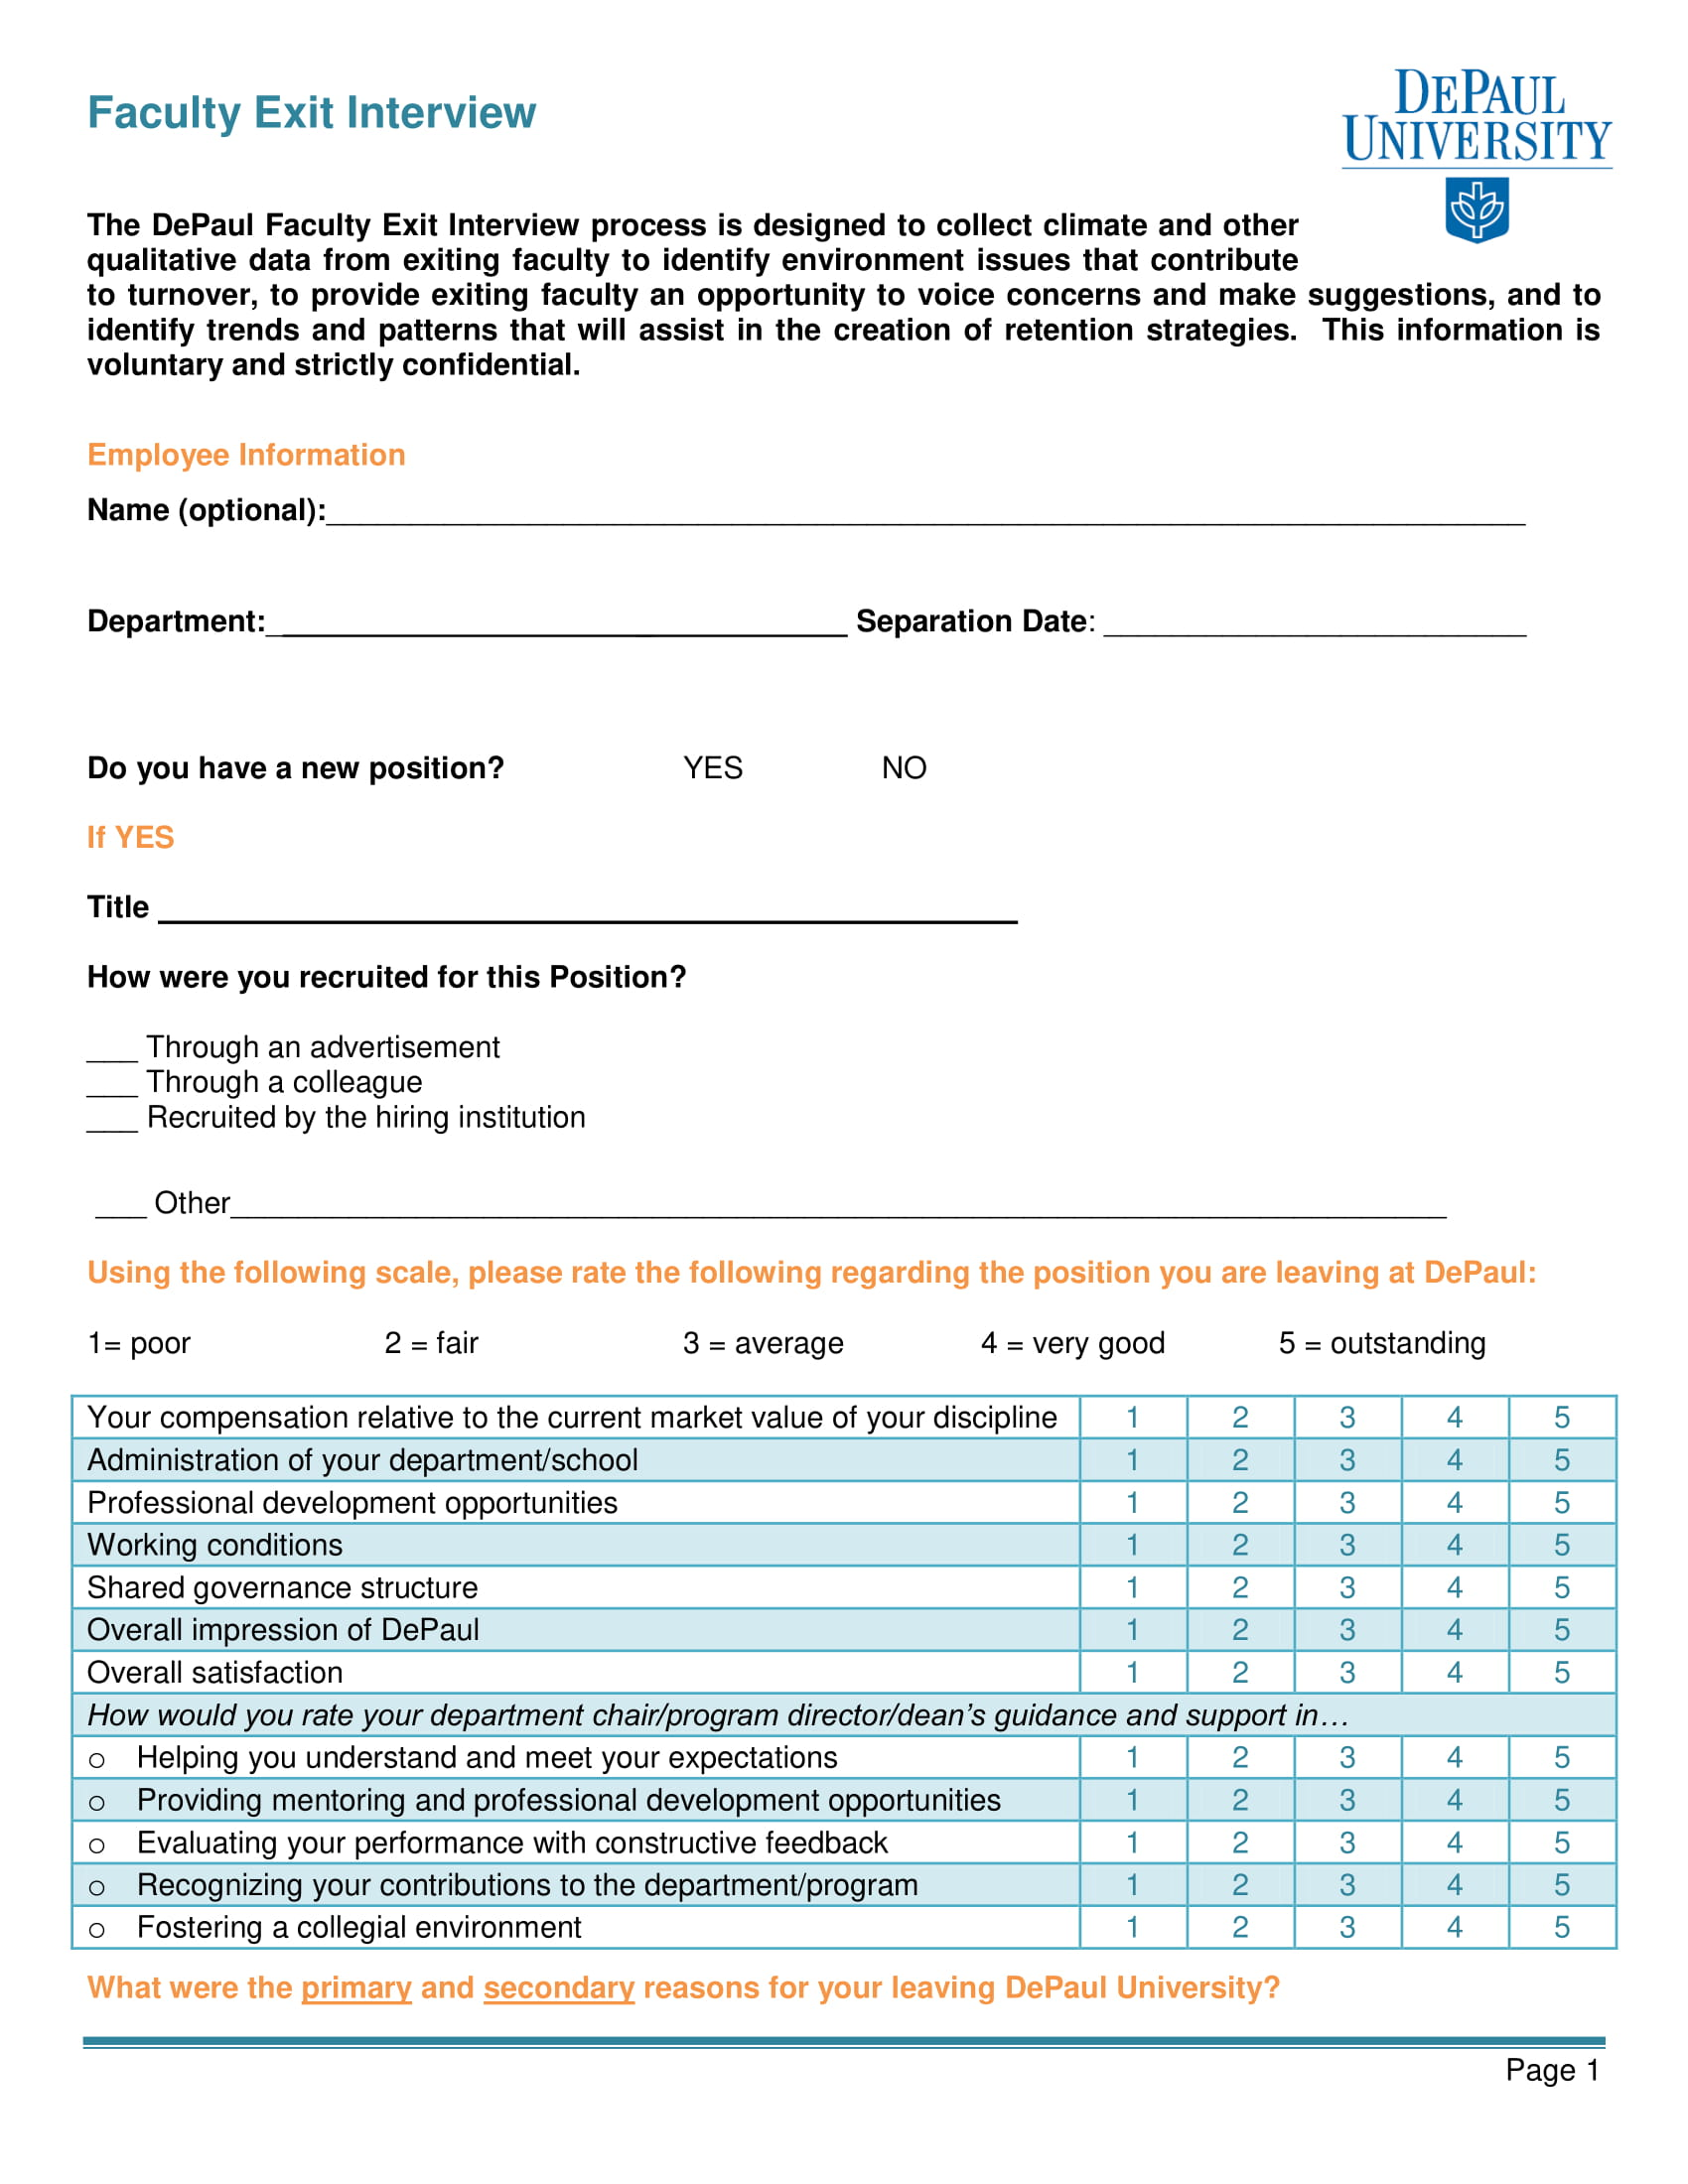 faculty exit interview survey questionnaire example